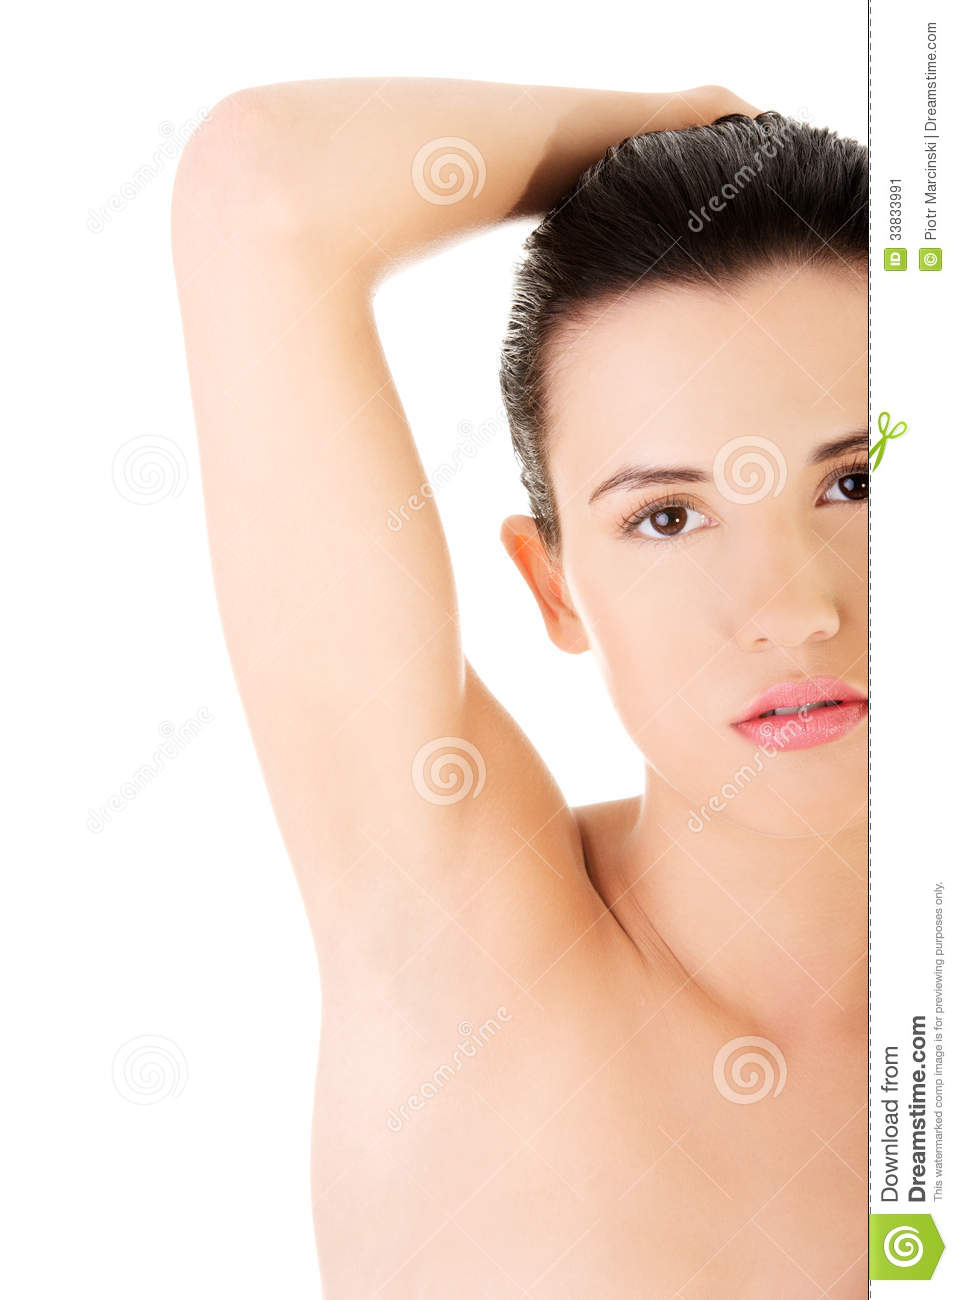 how to make your armpit whiter fast